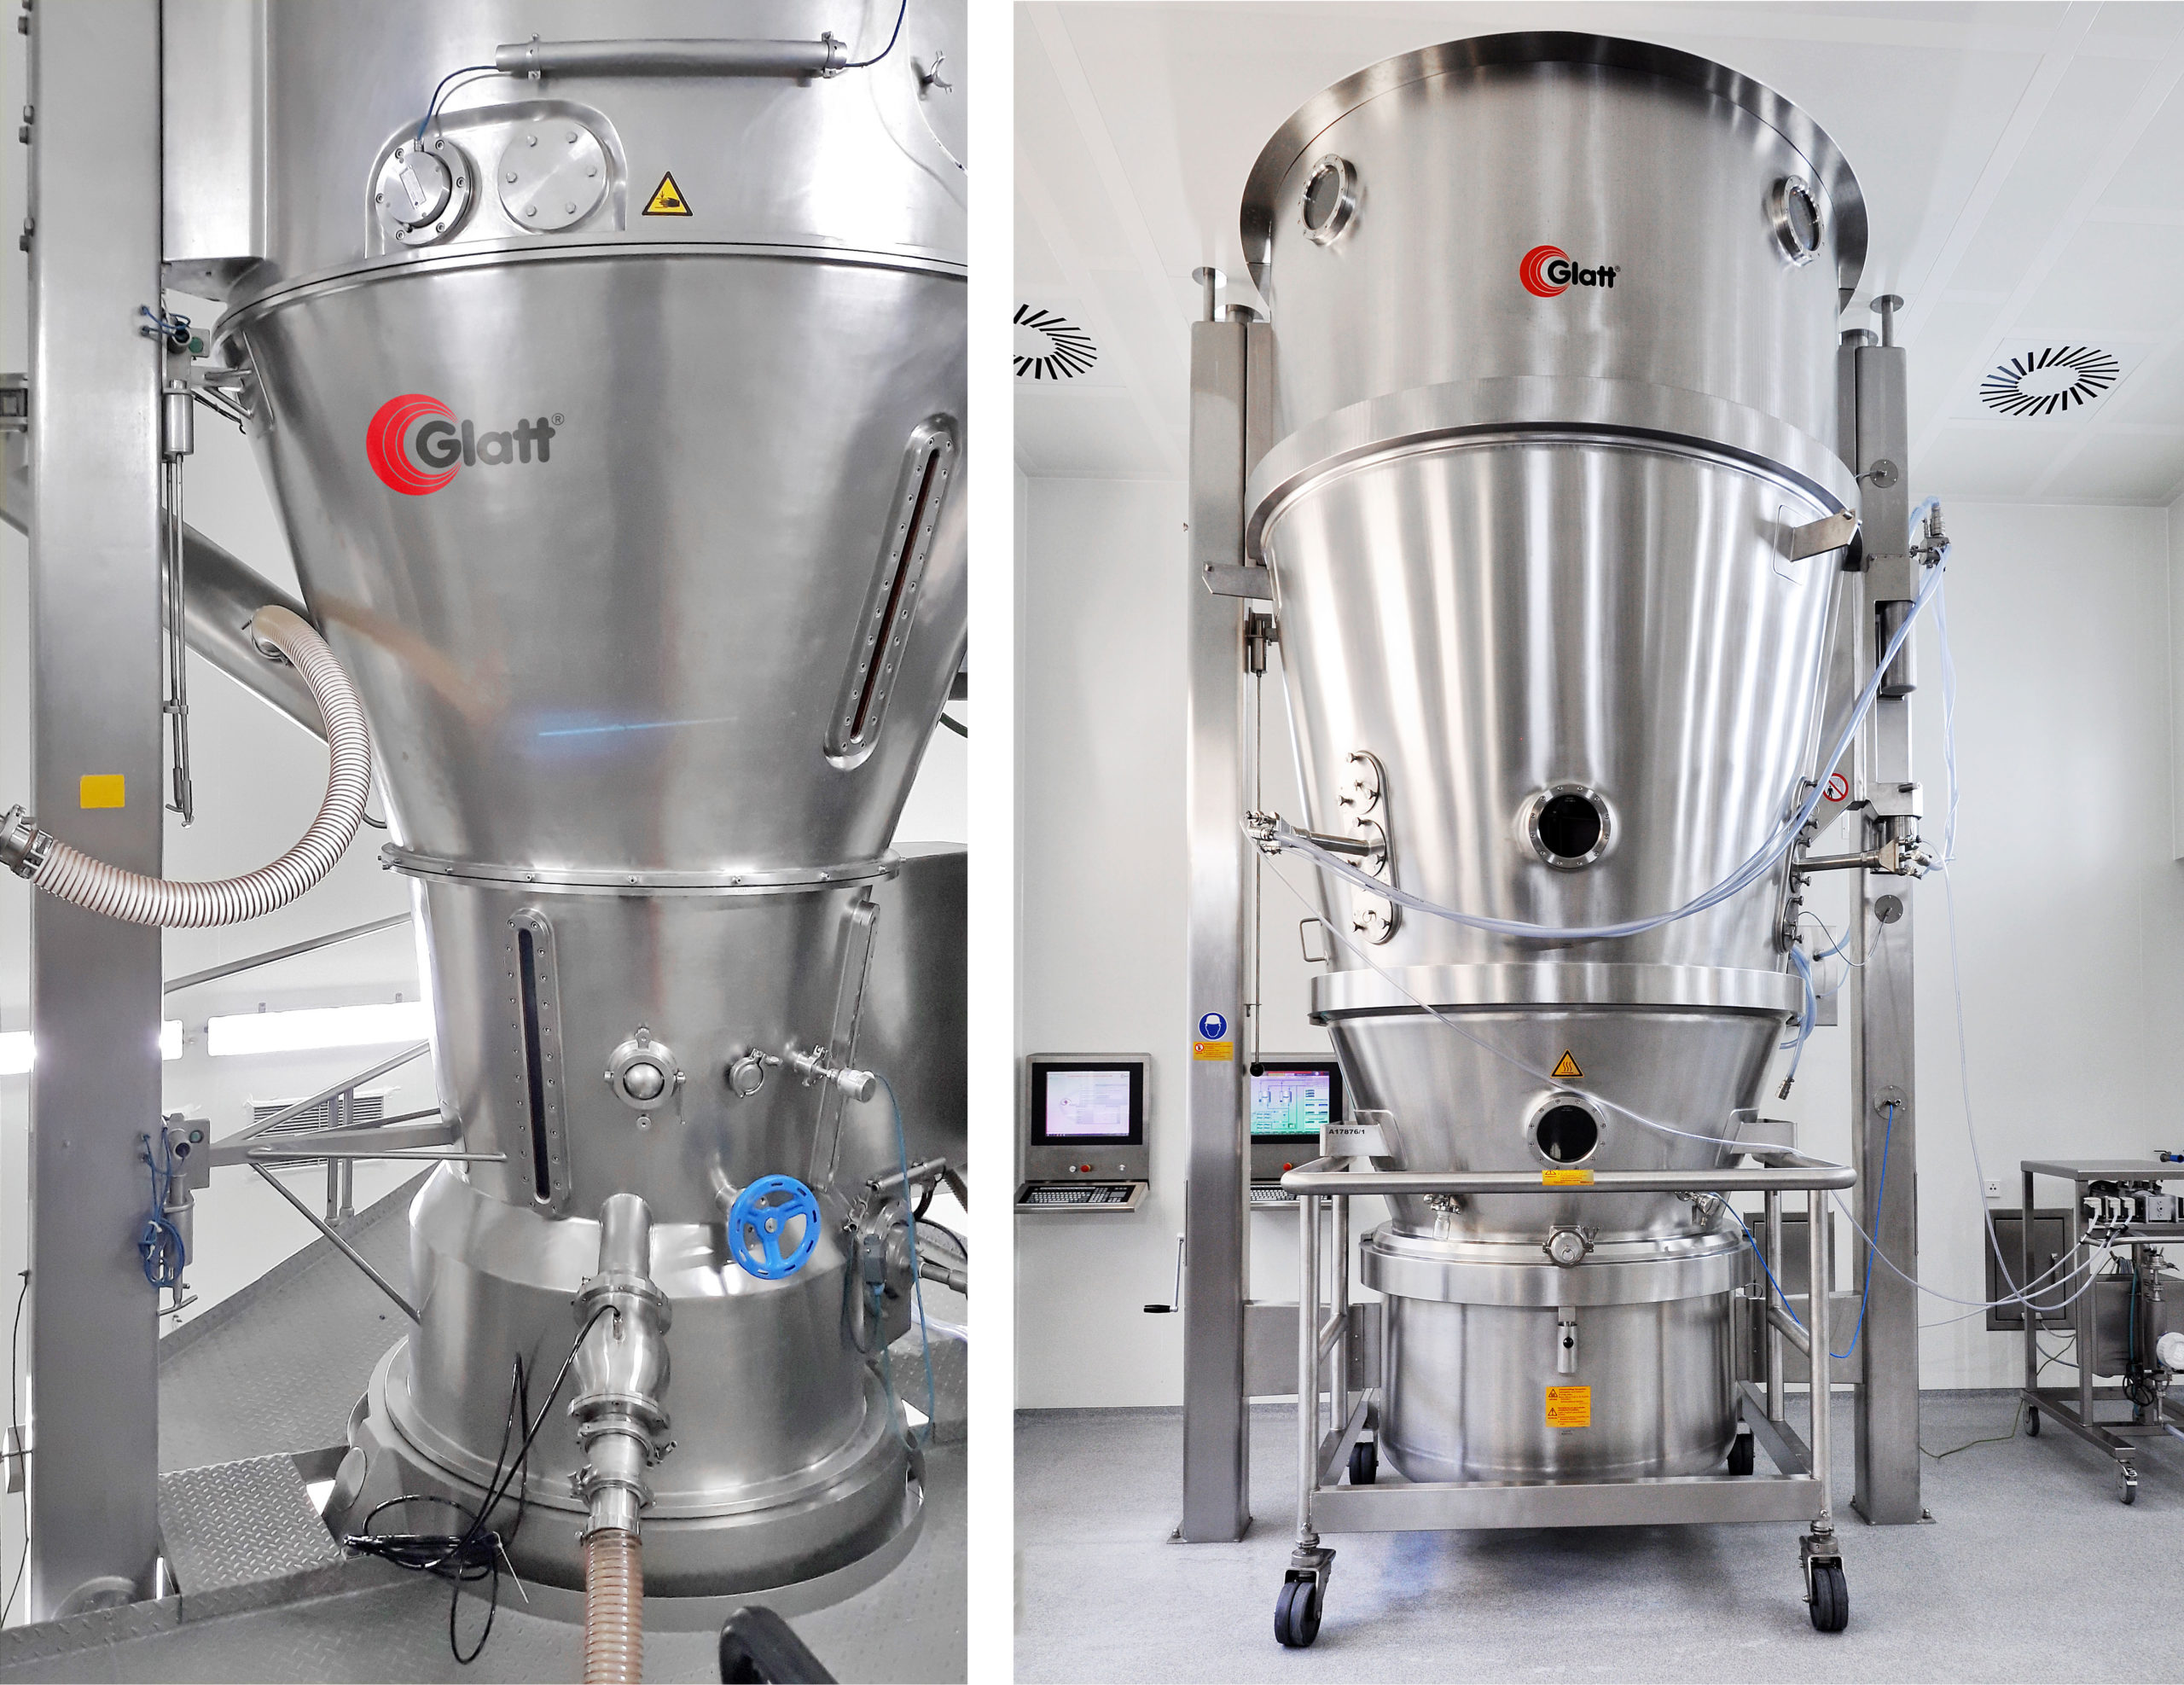 Glatt offers new fluid bed options for solvent-based processes and products requiring Kosher and Halal conditions